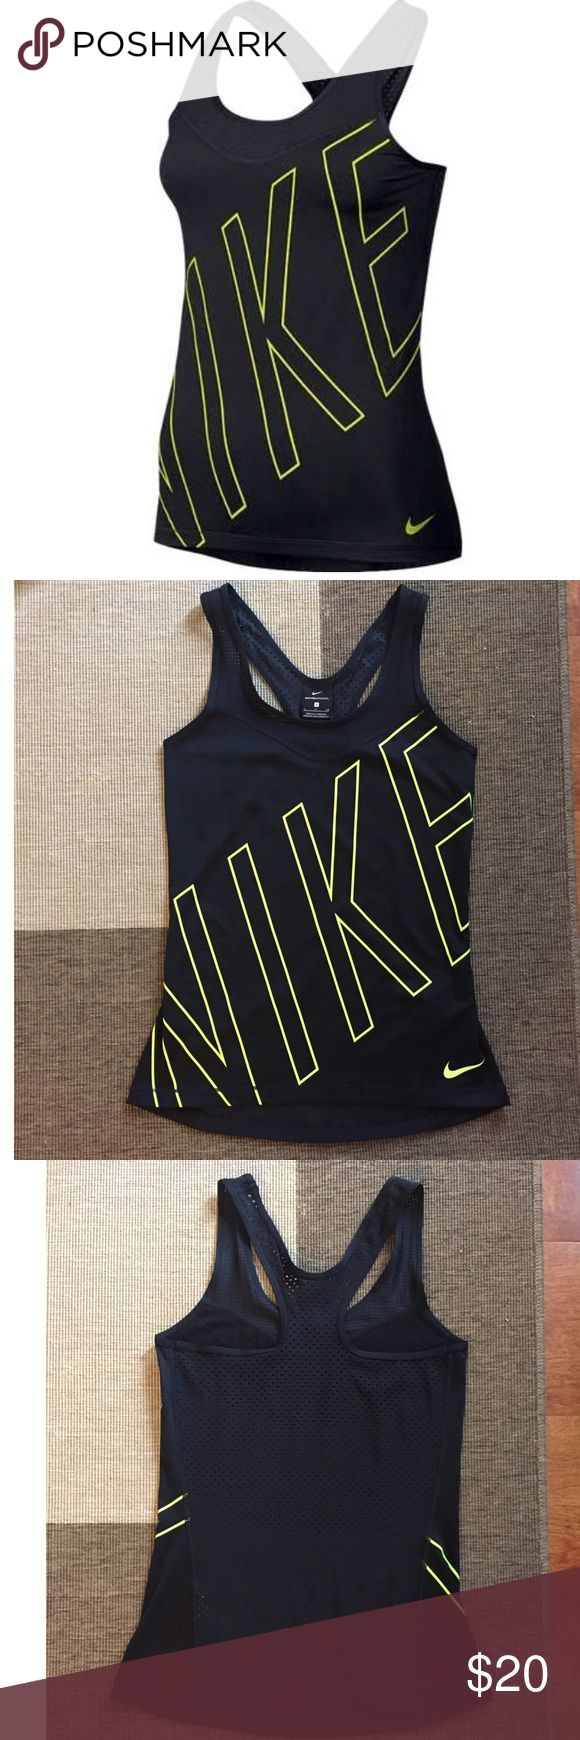 Nike Pro Women's Hypercool Tank Sweat-wicking stretch fabric to help keep you cool and dry during competition.  Racerback for enhanced range of motion.  Open-mesh back panel for excellent ventilation.  Fitted.  Dri-FIT 84% polyester/16% spandex.  New.  No flaws Nike Tops Tank Tops